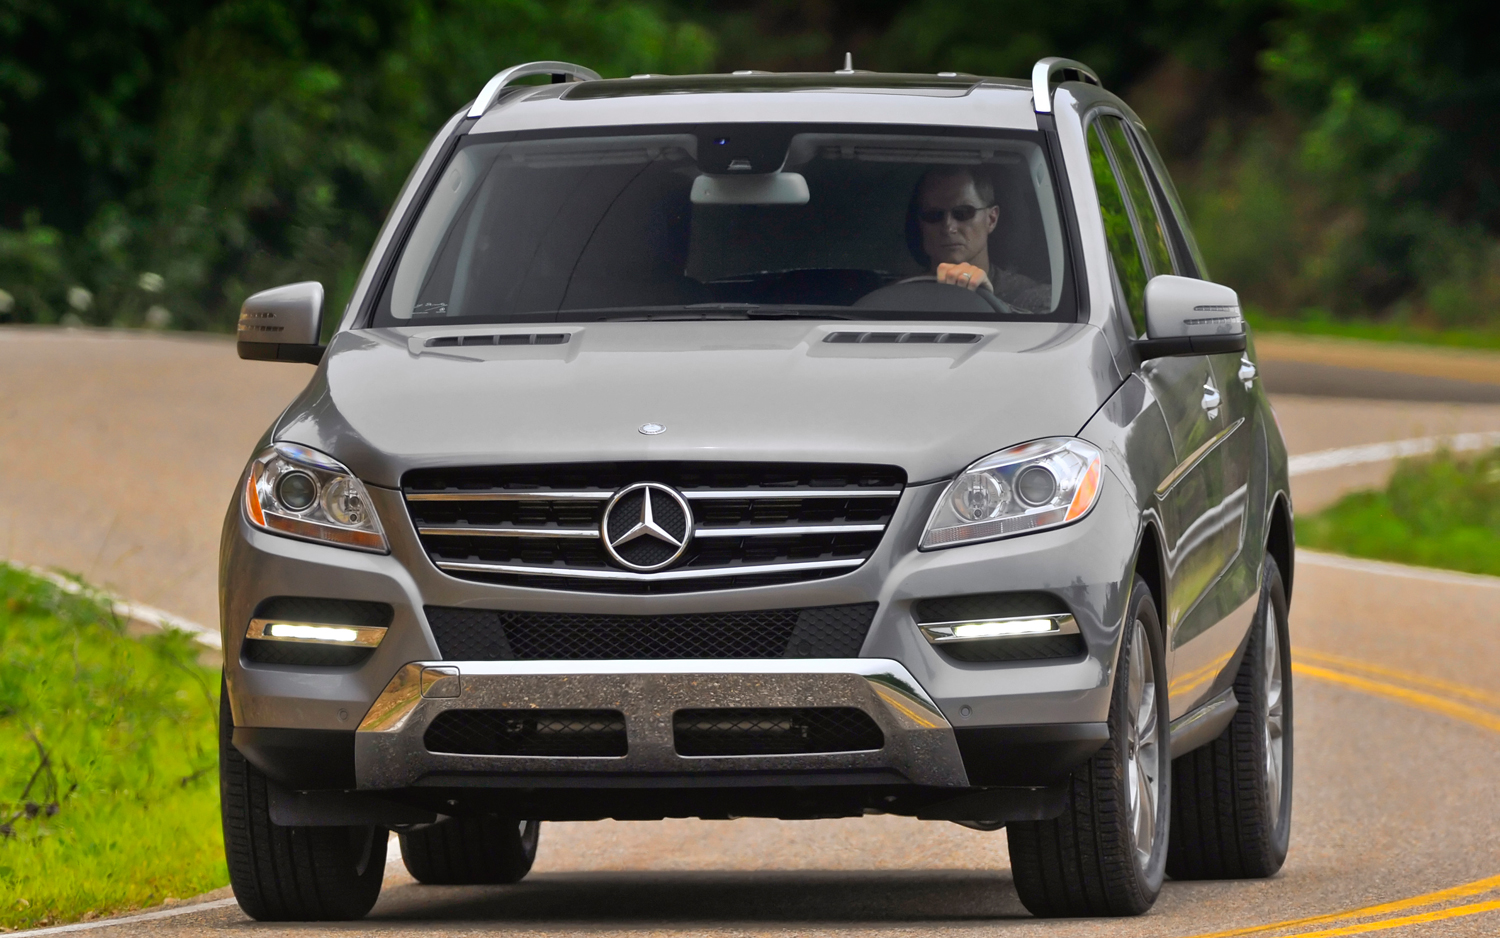 Mercedes benz ml 350 technical details history photos on for Mercedes benz ml350 accessories